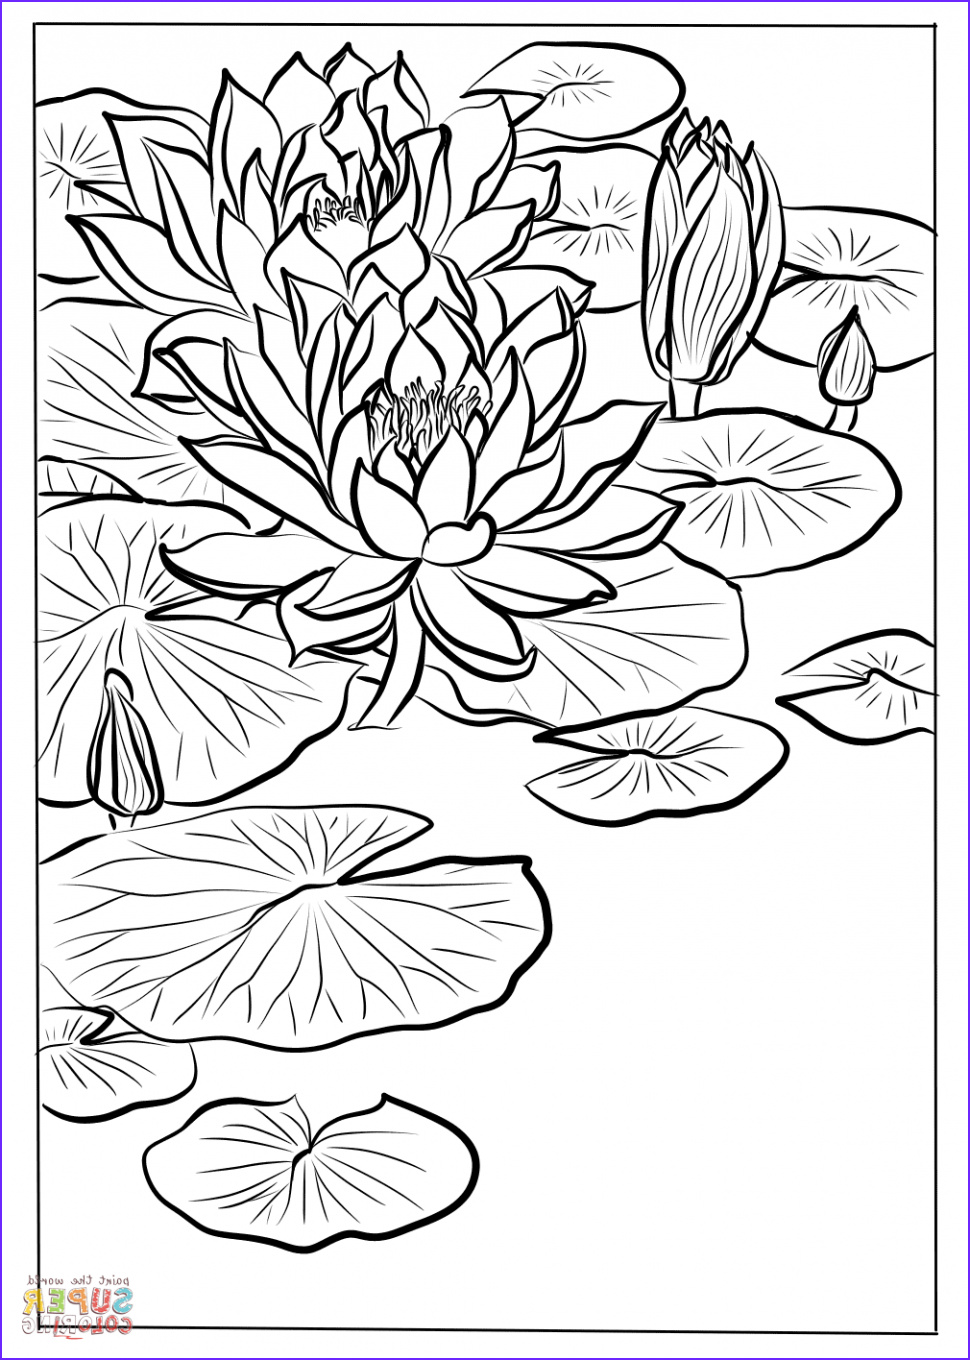 Lily Coloring Beautiful Image Water Lily Flower Drawing at Getdrawings